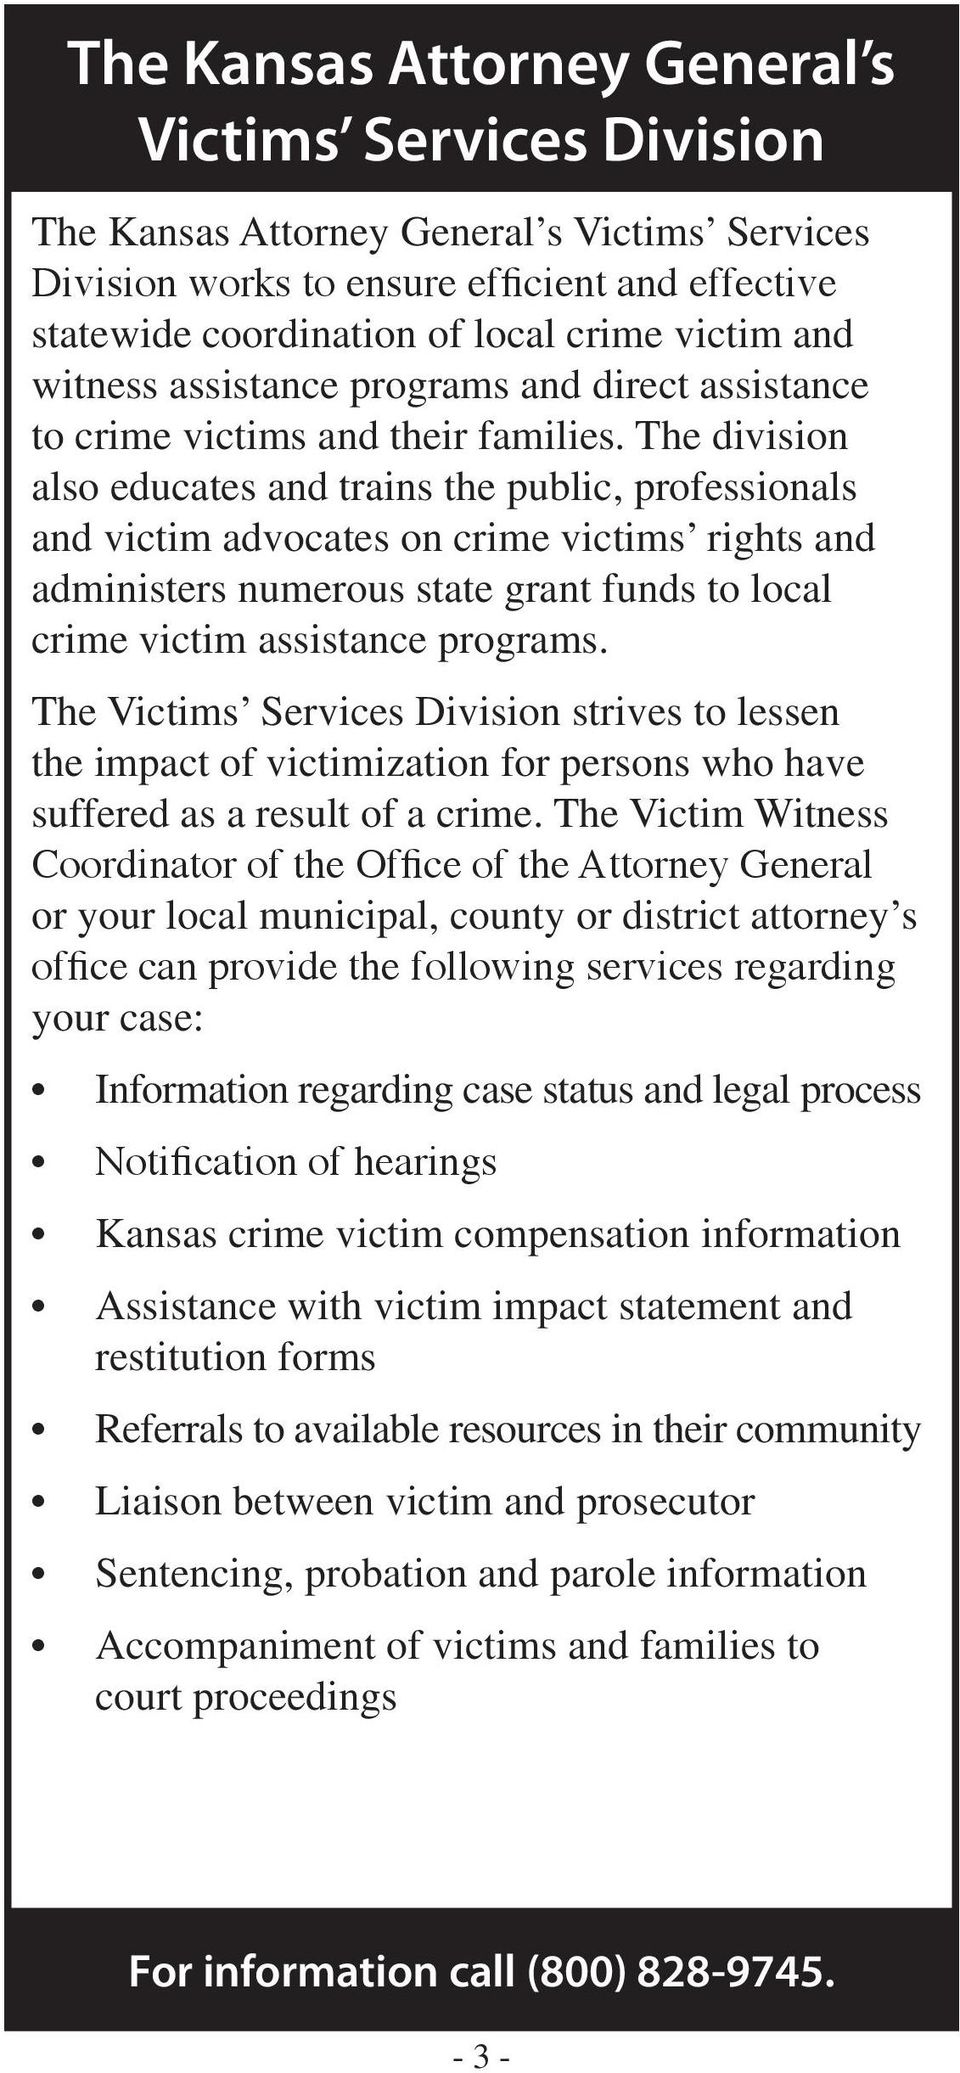 The division also educates and trains the public, professionals and victim advocates on crime victims rights and administers numerous state grant funds to local crime victim assistance programs.